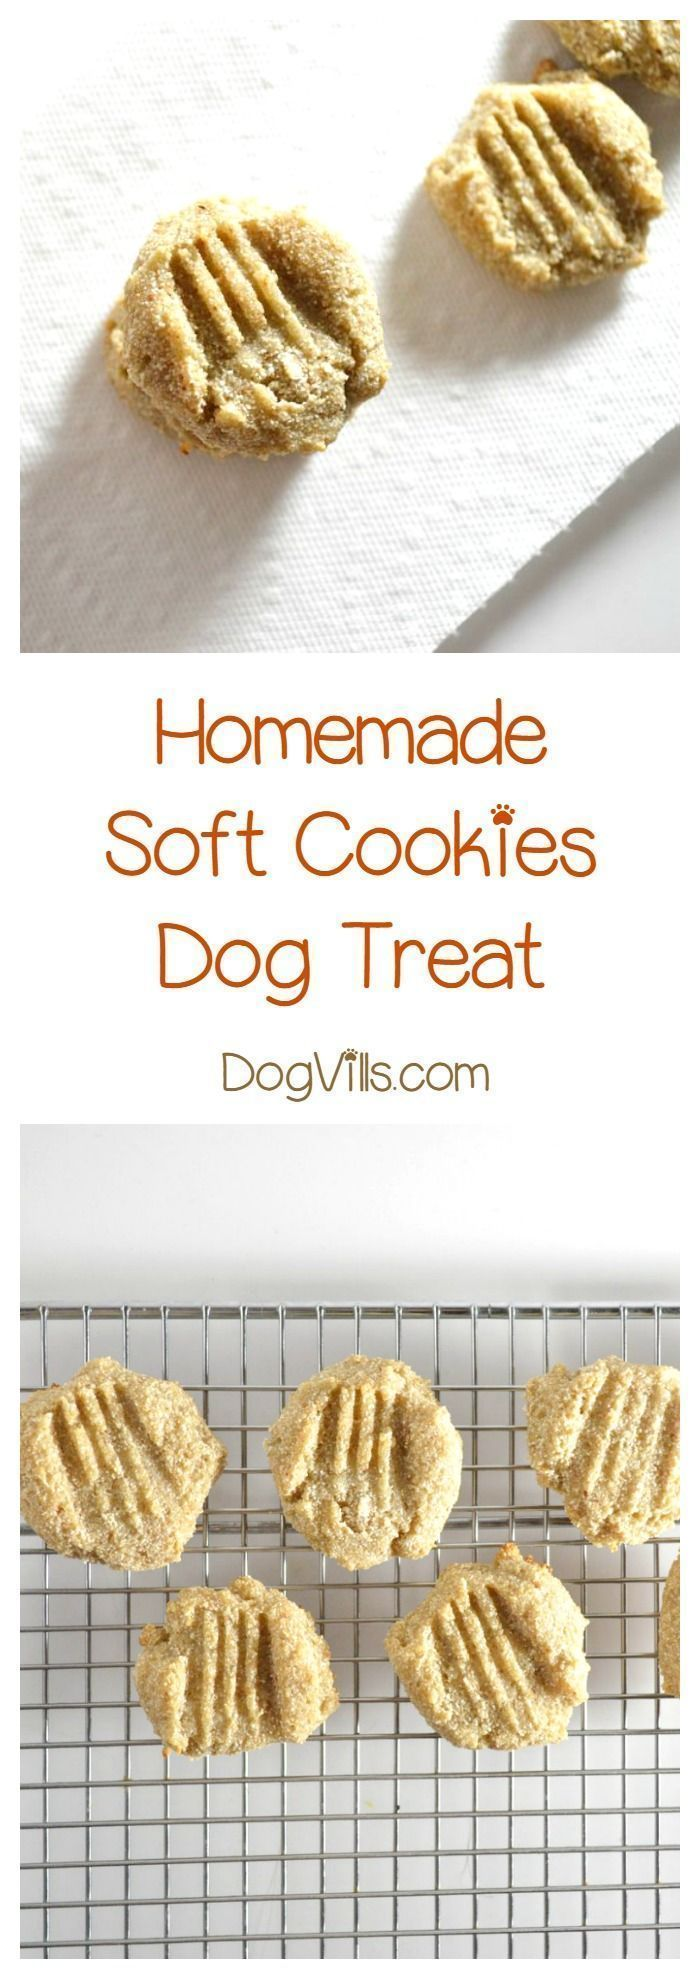 Soft Doggie Cookies For Older Dogs With Allergies Recipe